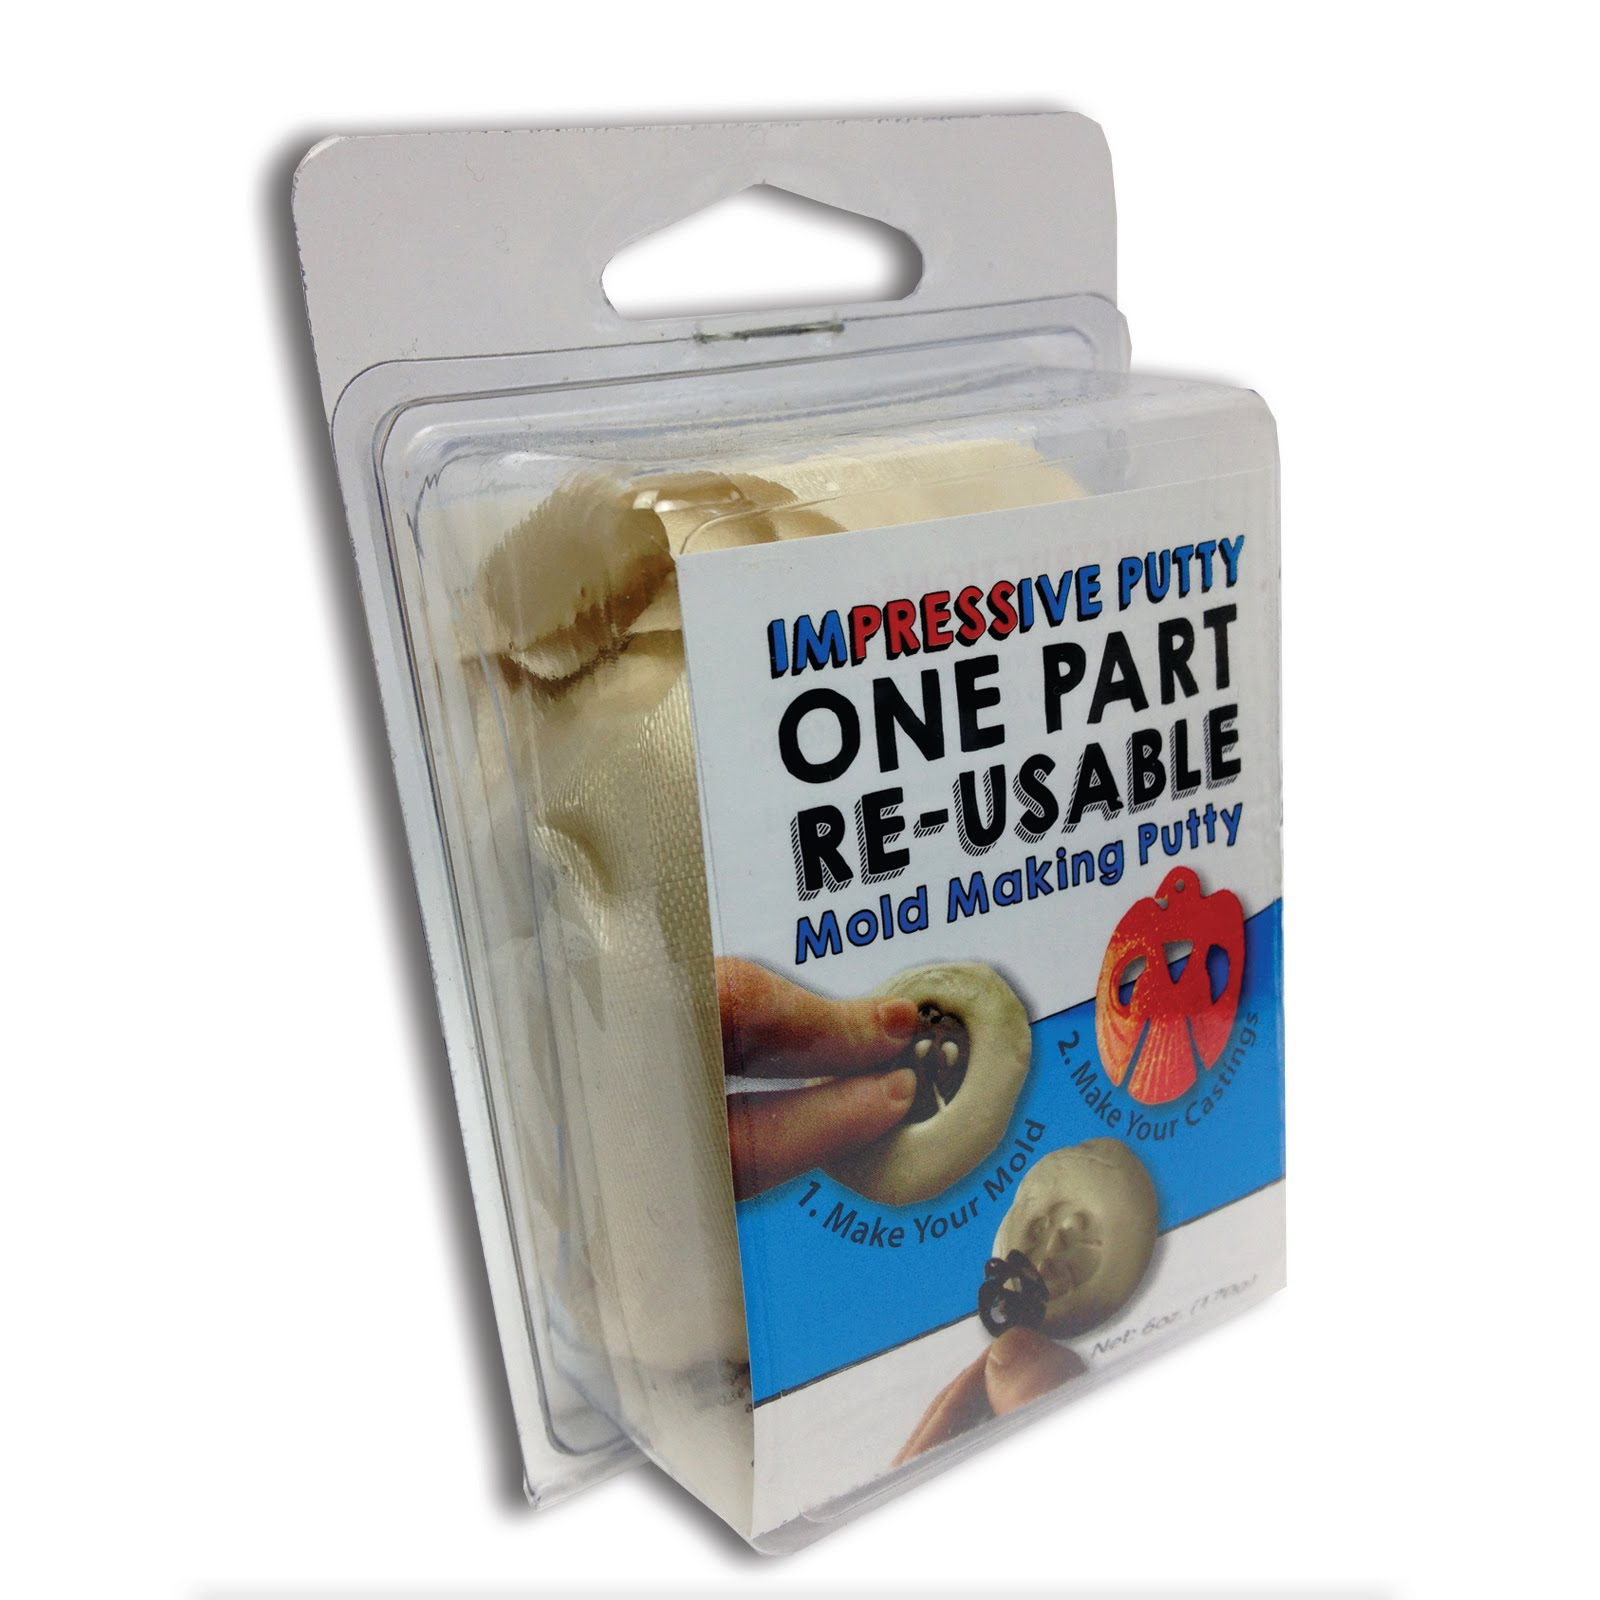 Lure making kits make your own fishing lures - Impressive Re Usable Molding Putty Impressive Re Usable Molding Putty Make Your Own Re Usable Fishing Lure Molds